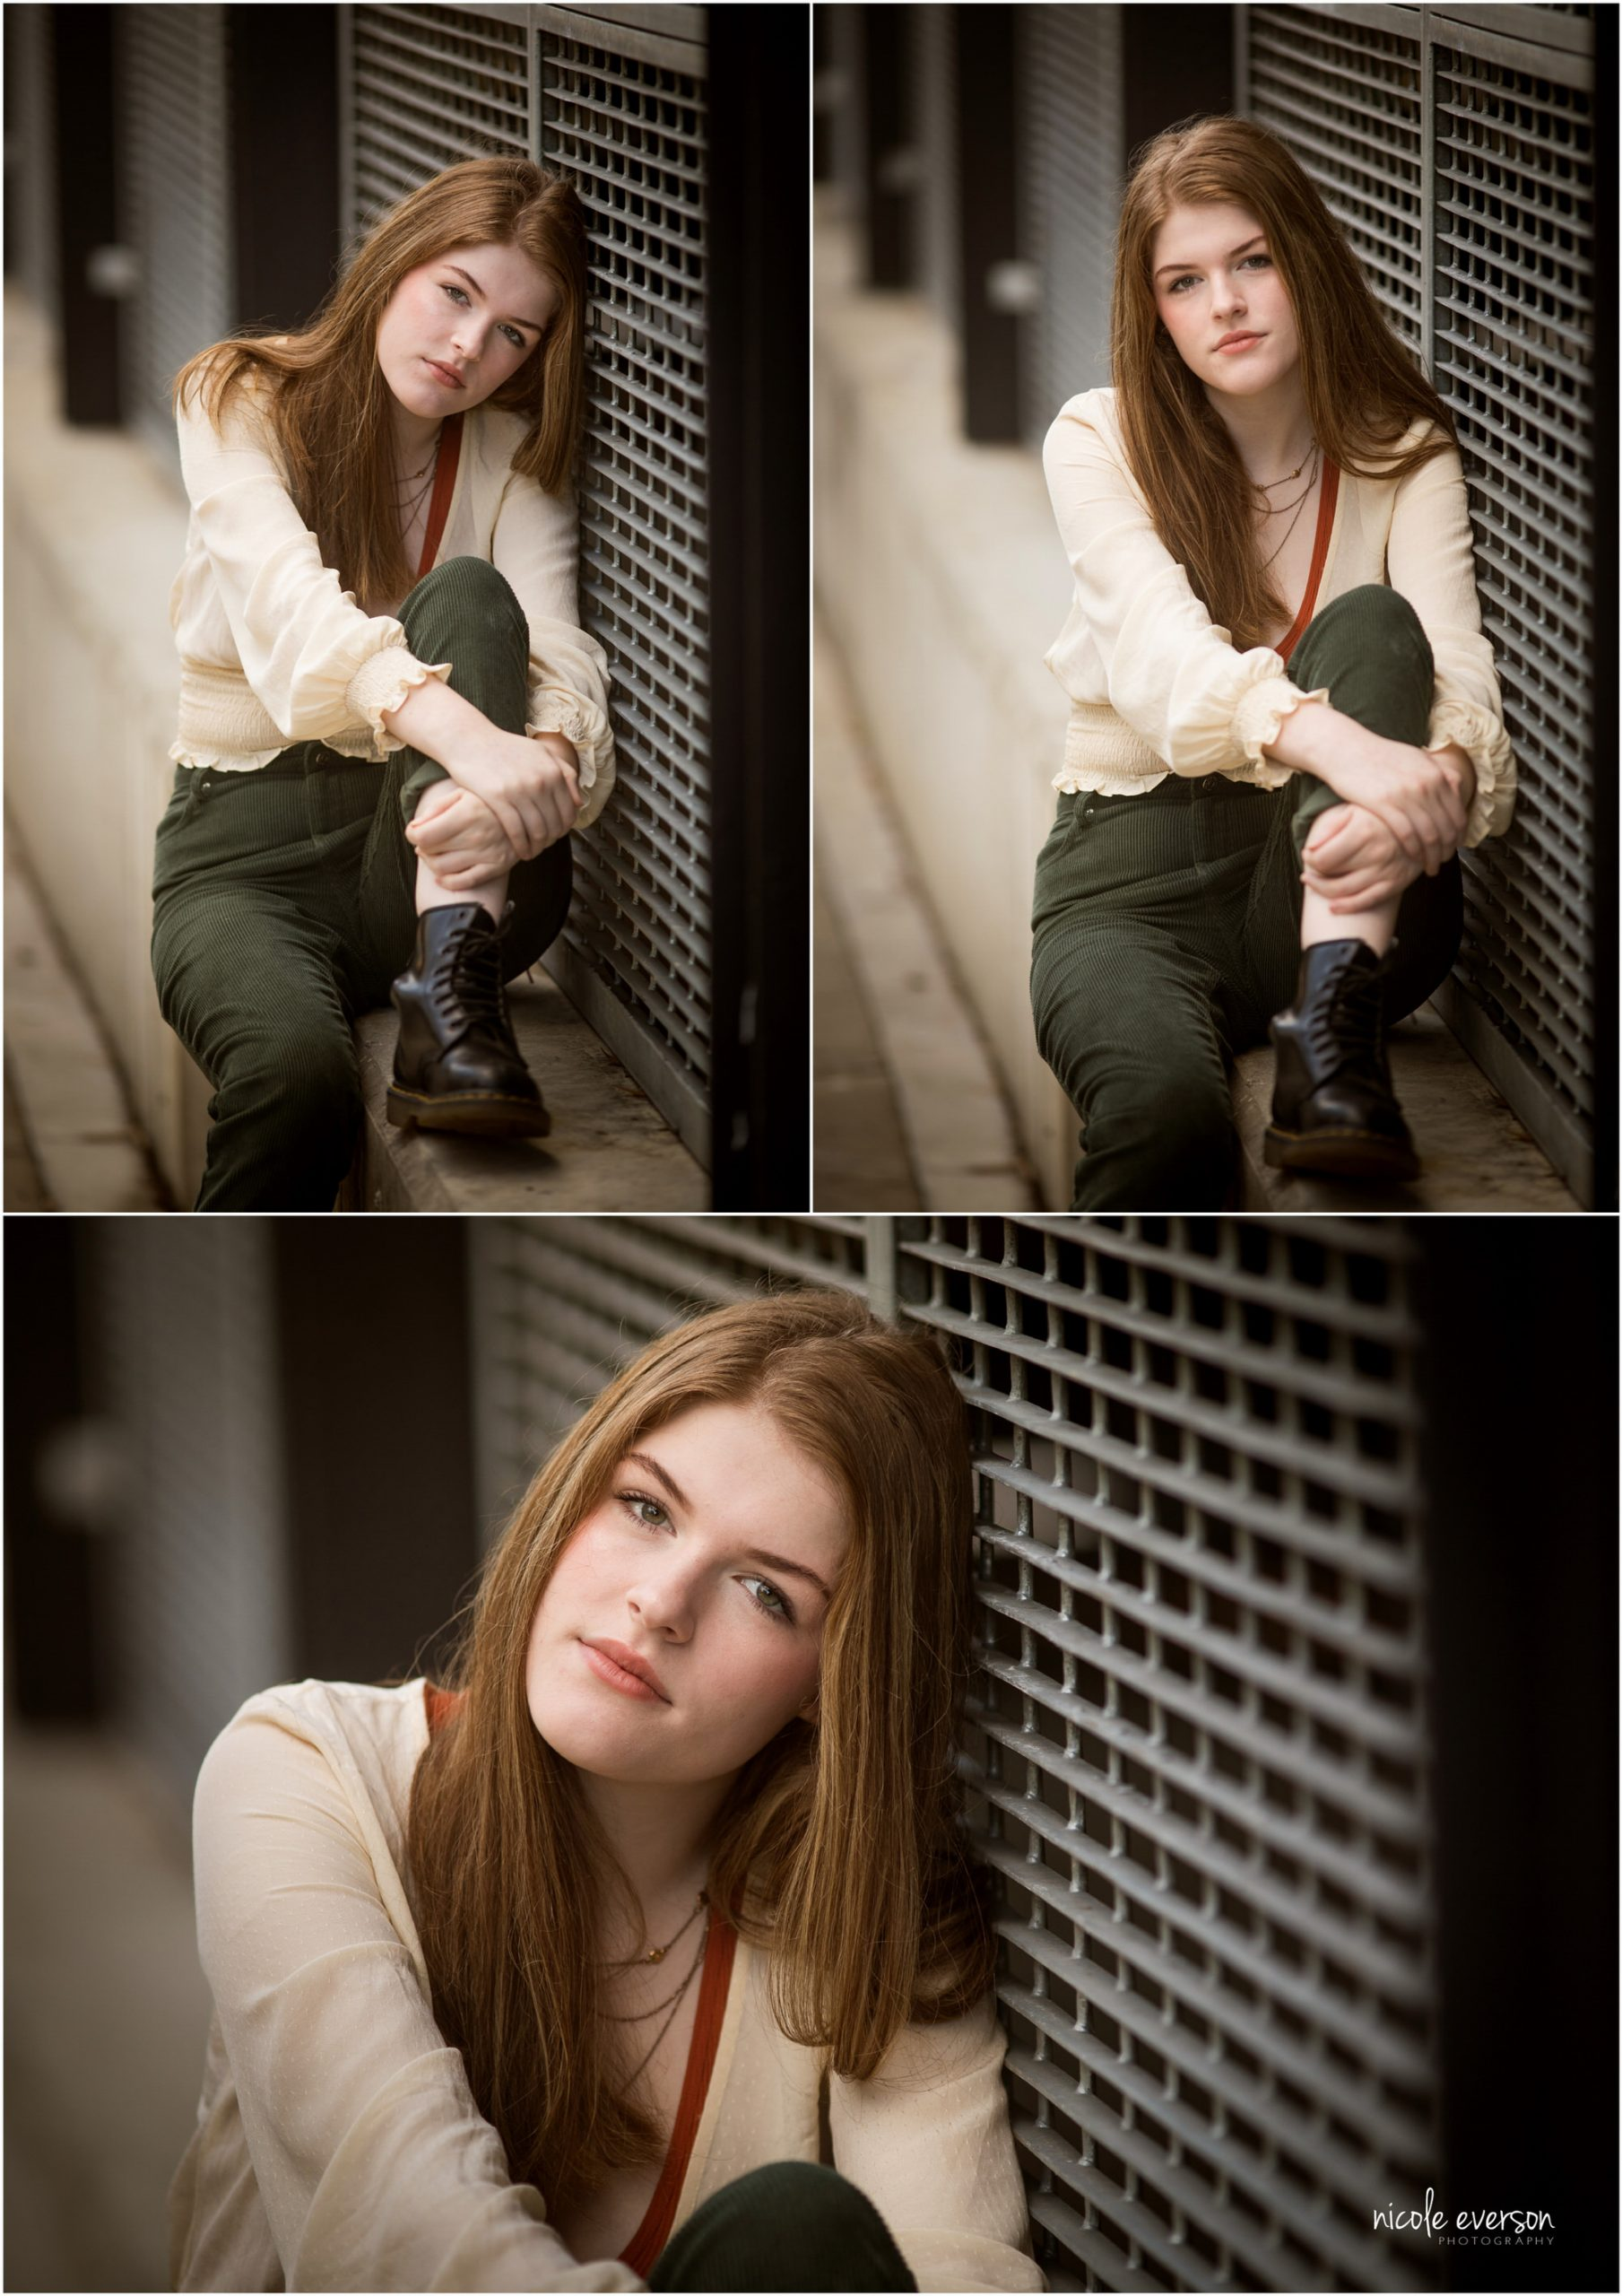 High school senior girl in cream top and jeans leaning against wall in Tallahassee, Florida. Nicole Everson Photography.